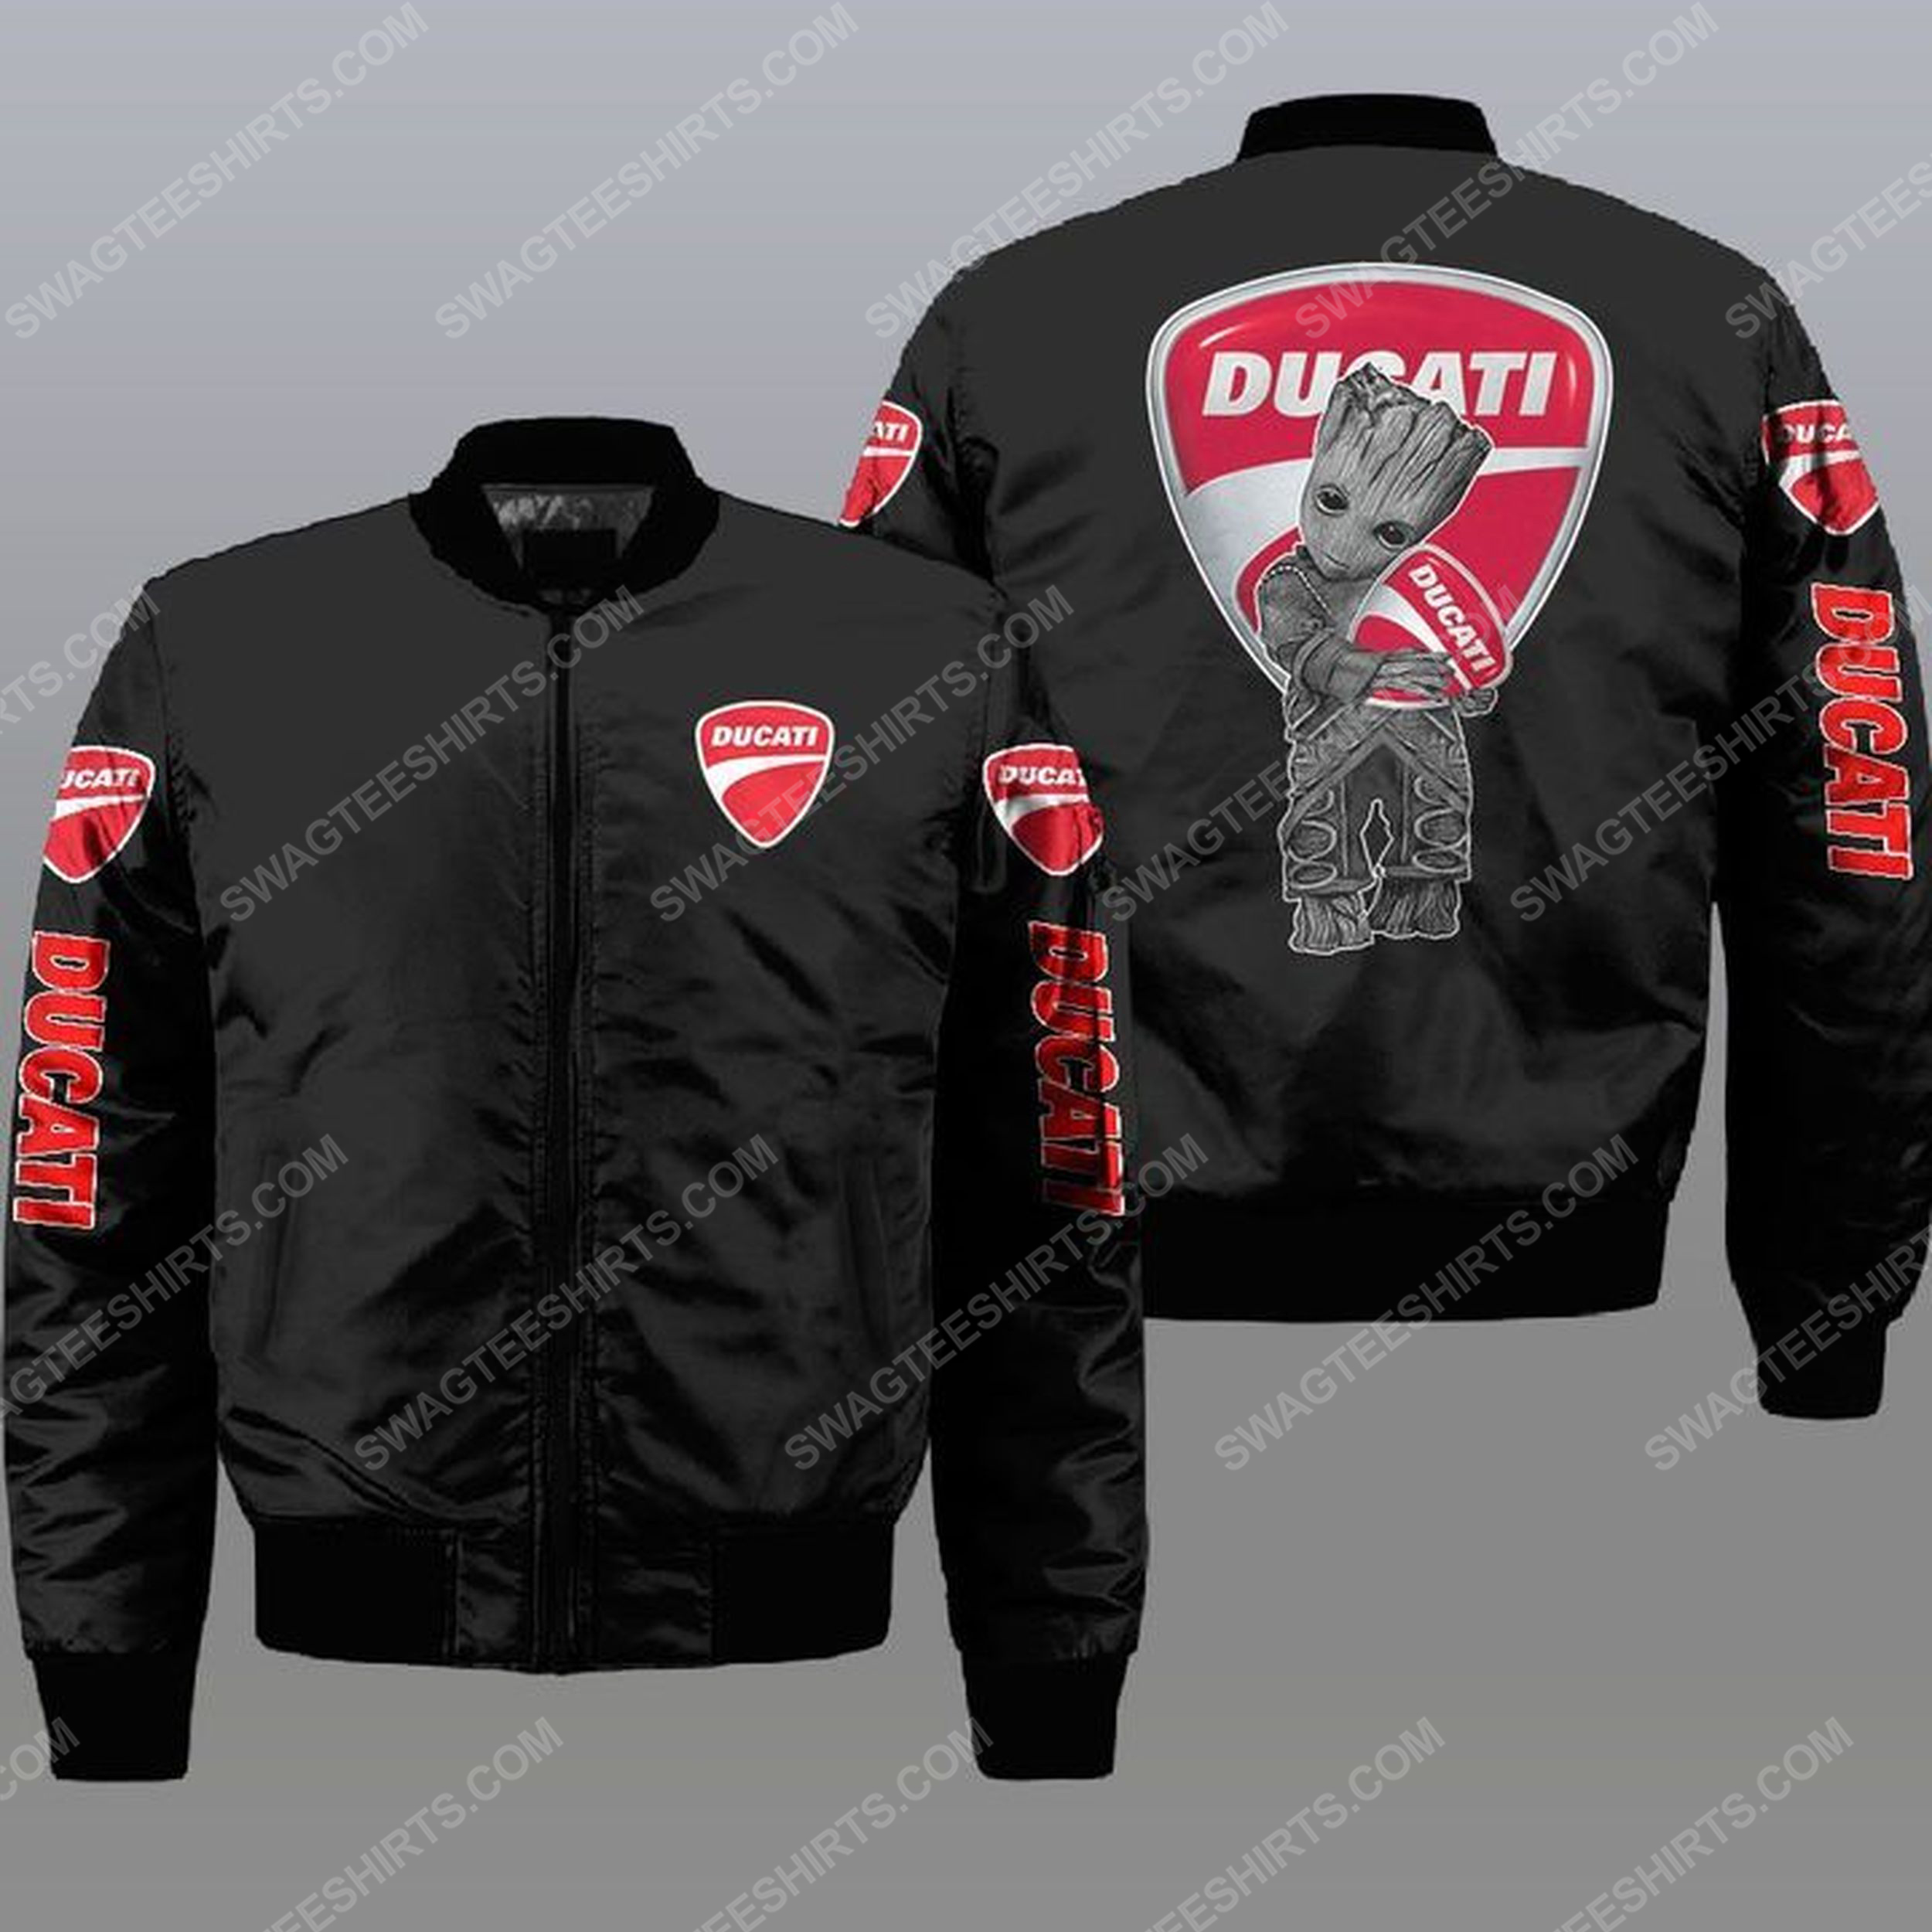 Baby groot and ducati all over print bomber jacket - black 1